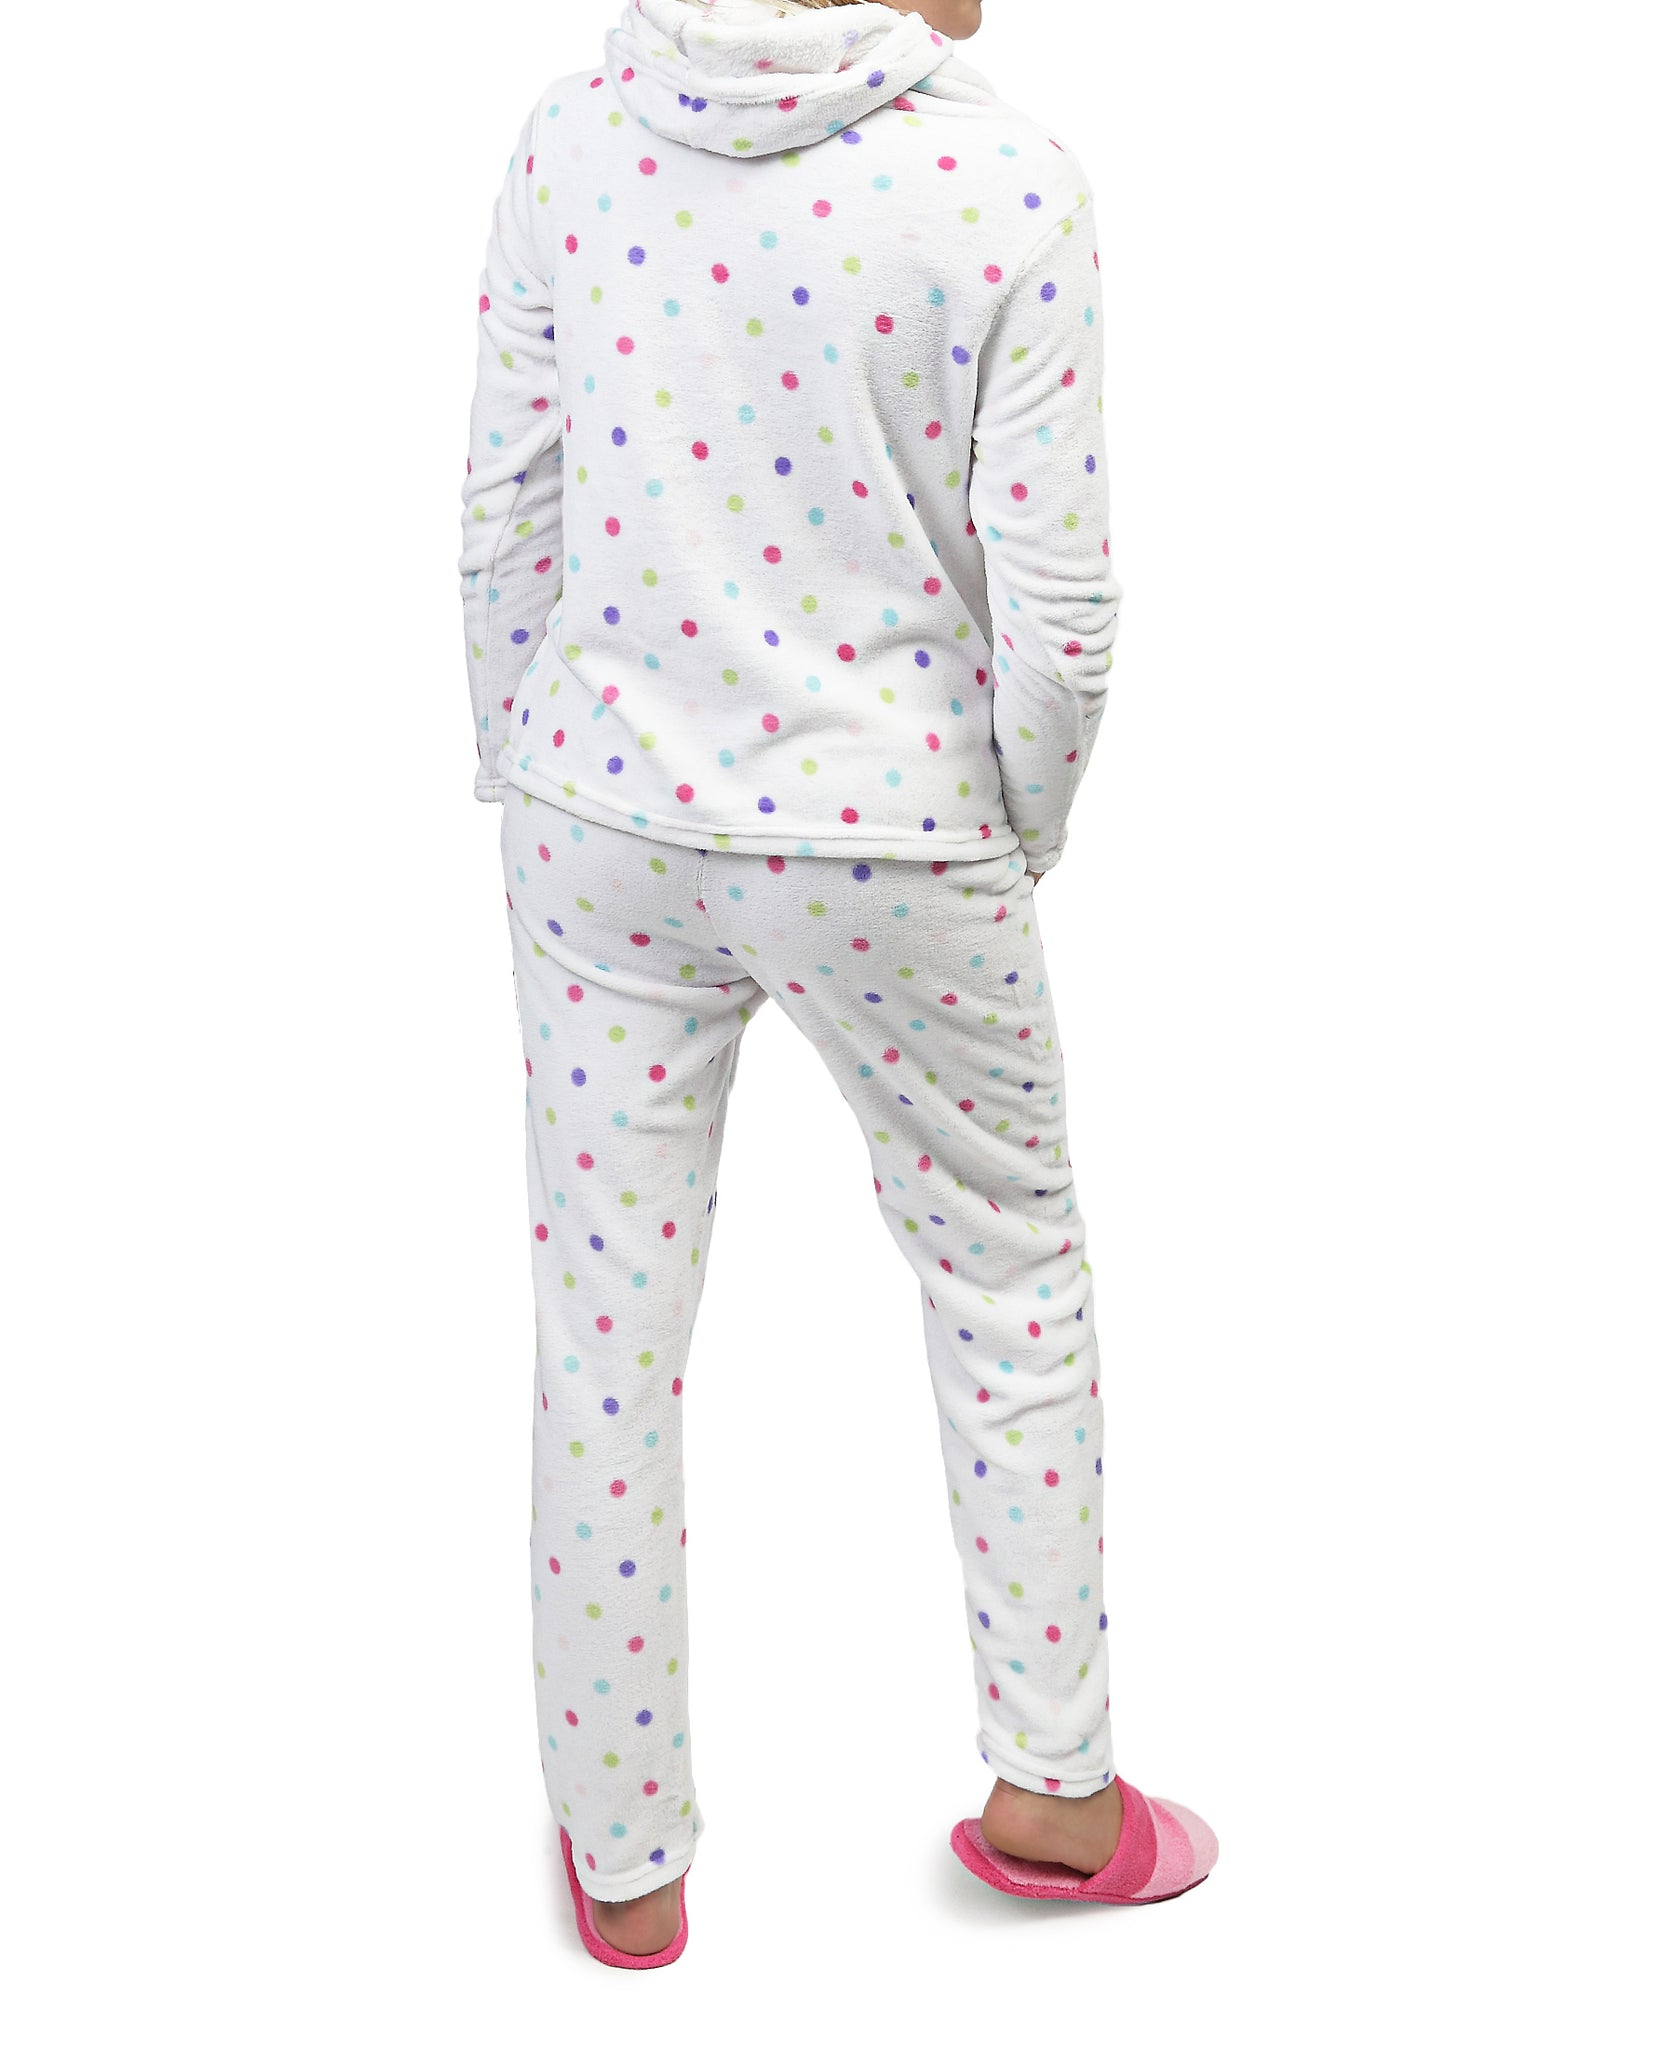 Girls 2 Piece Pyjamas - White